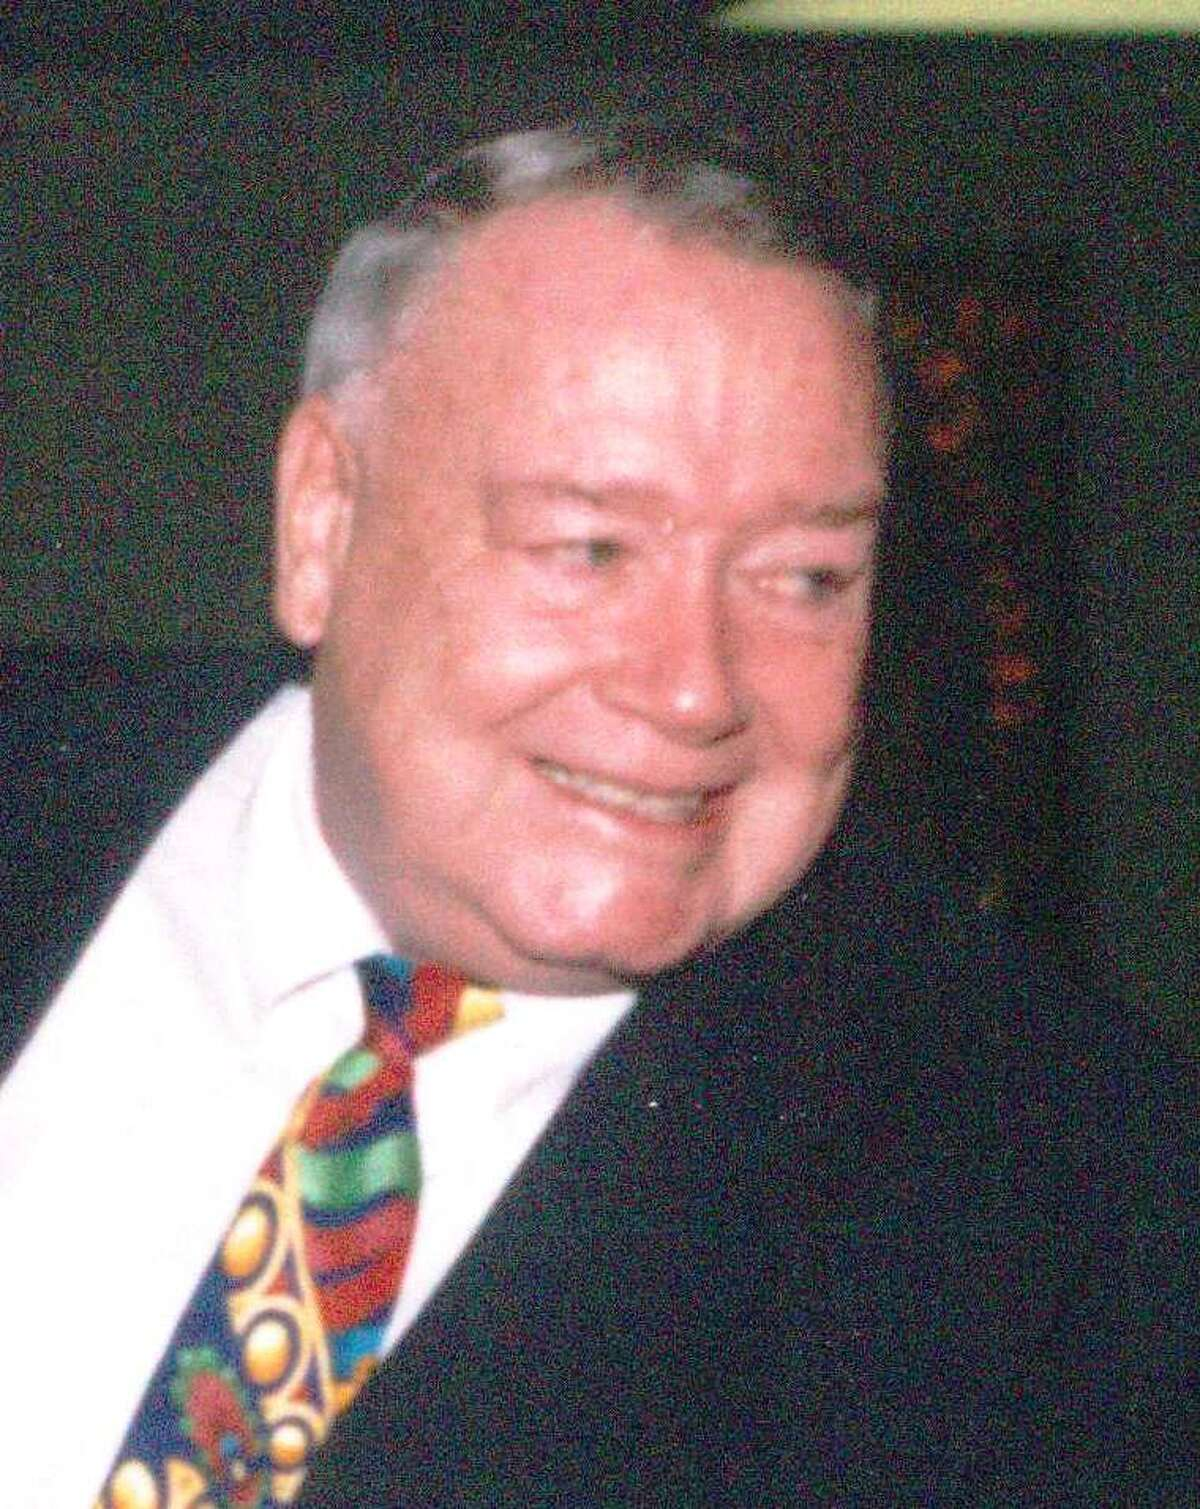 Jerome Templeton Brite died July 27, 2015, at a hospital in San Antonio from complications of cancer. He was 82.